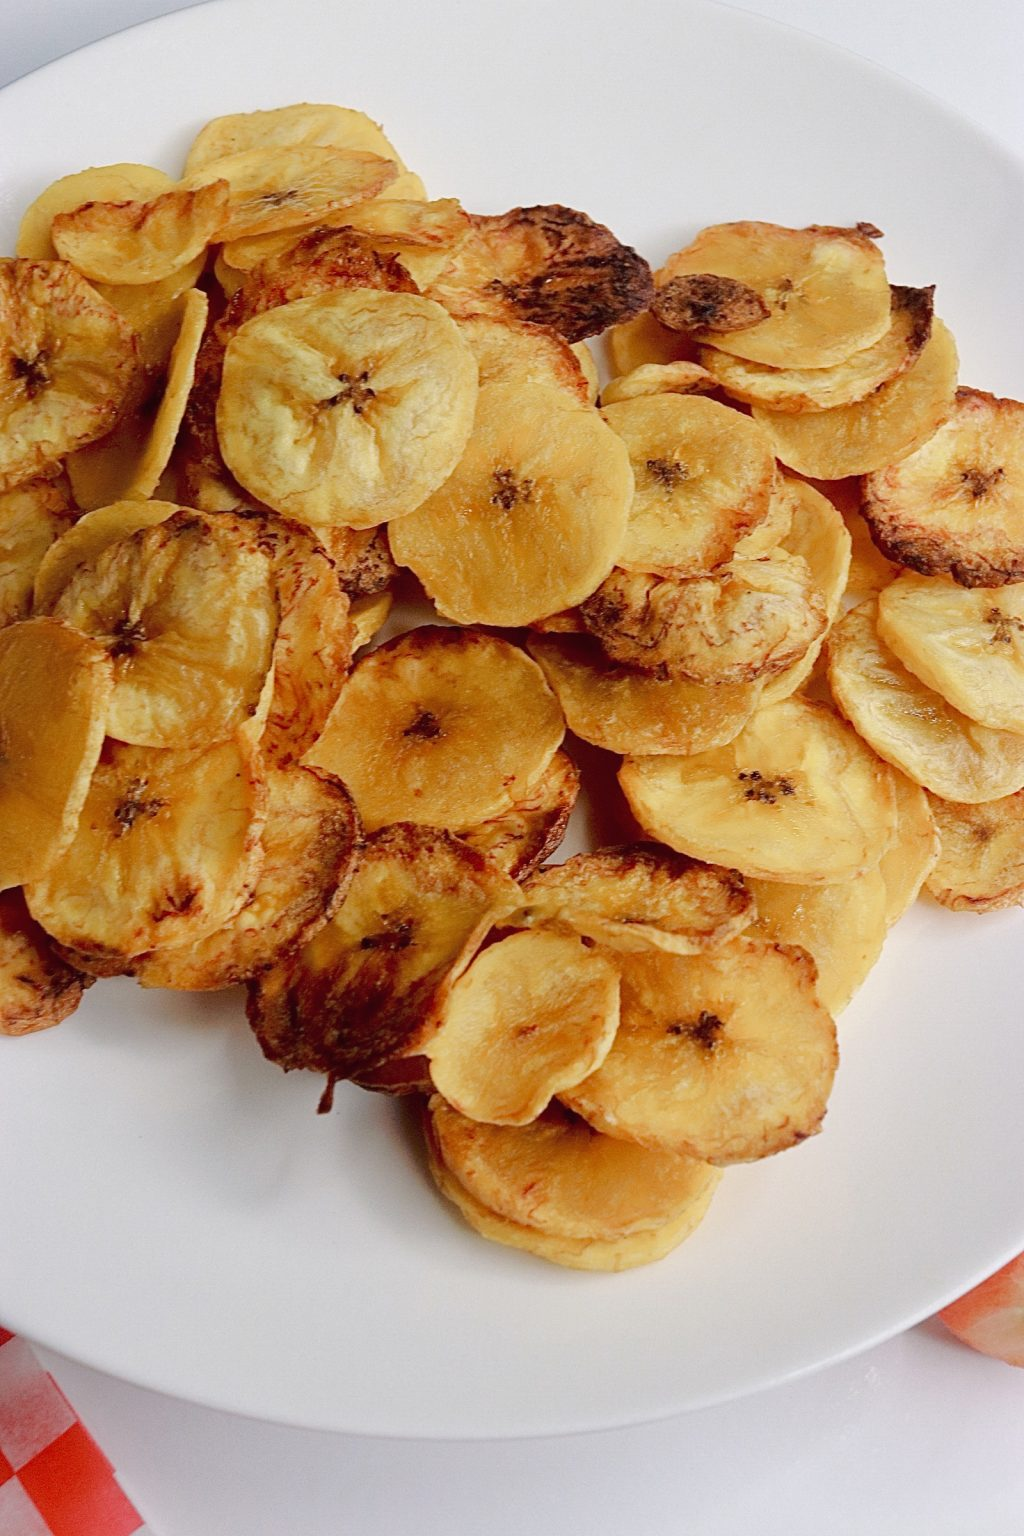 plantain chips recipe 3231 1024x1536 - The Perfect & Crunchy Homemade Plantain Chips Recipe